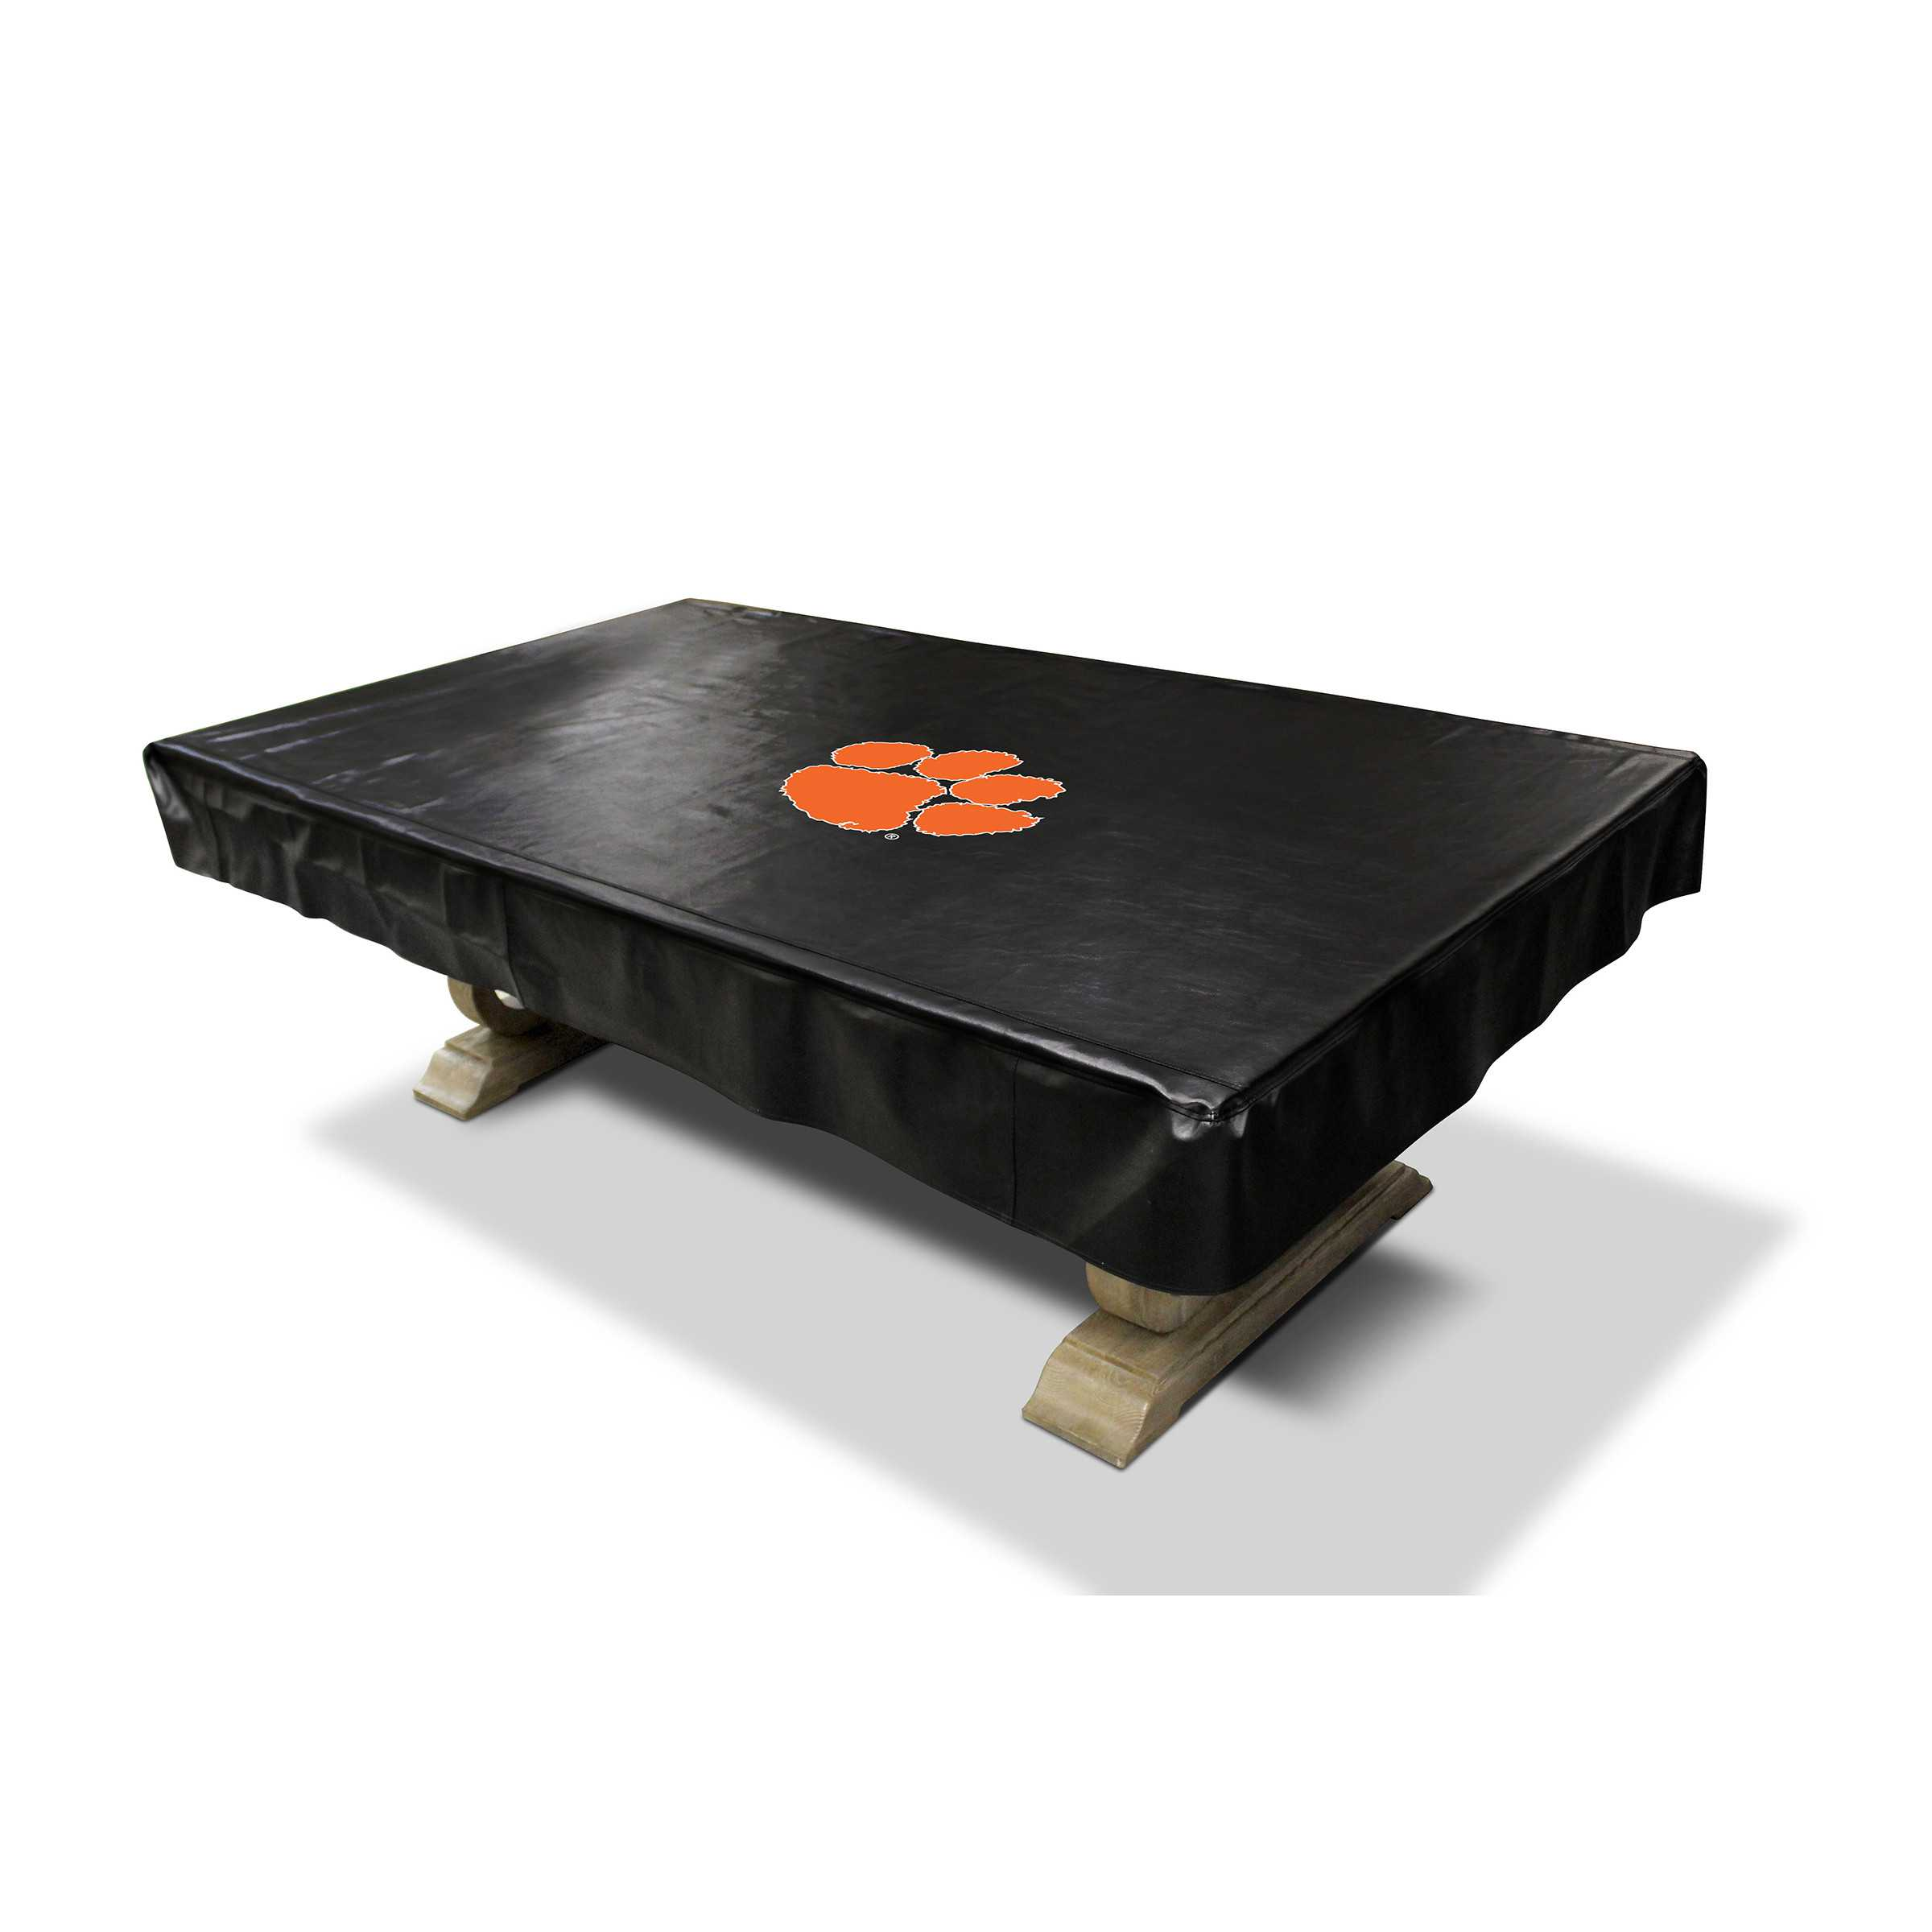 CLEMSON UNIVERSITY 8' DELUXE POOL TABLE COVER